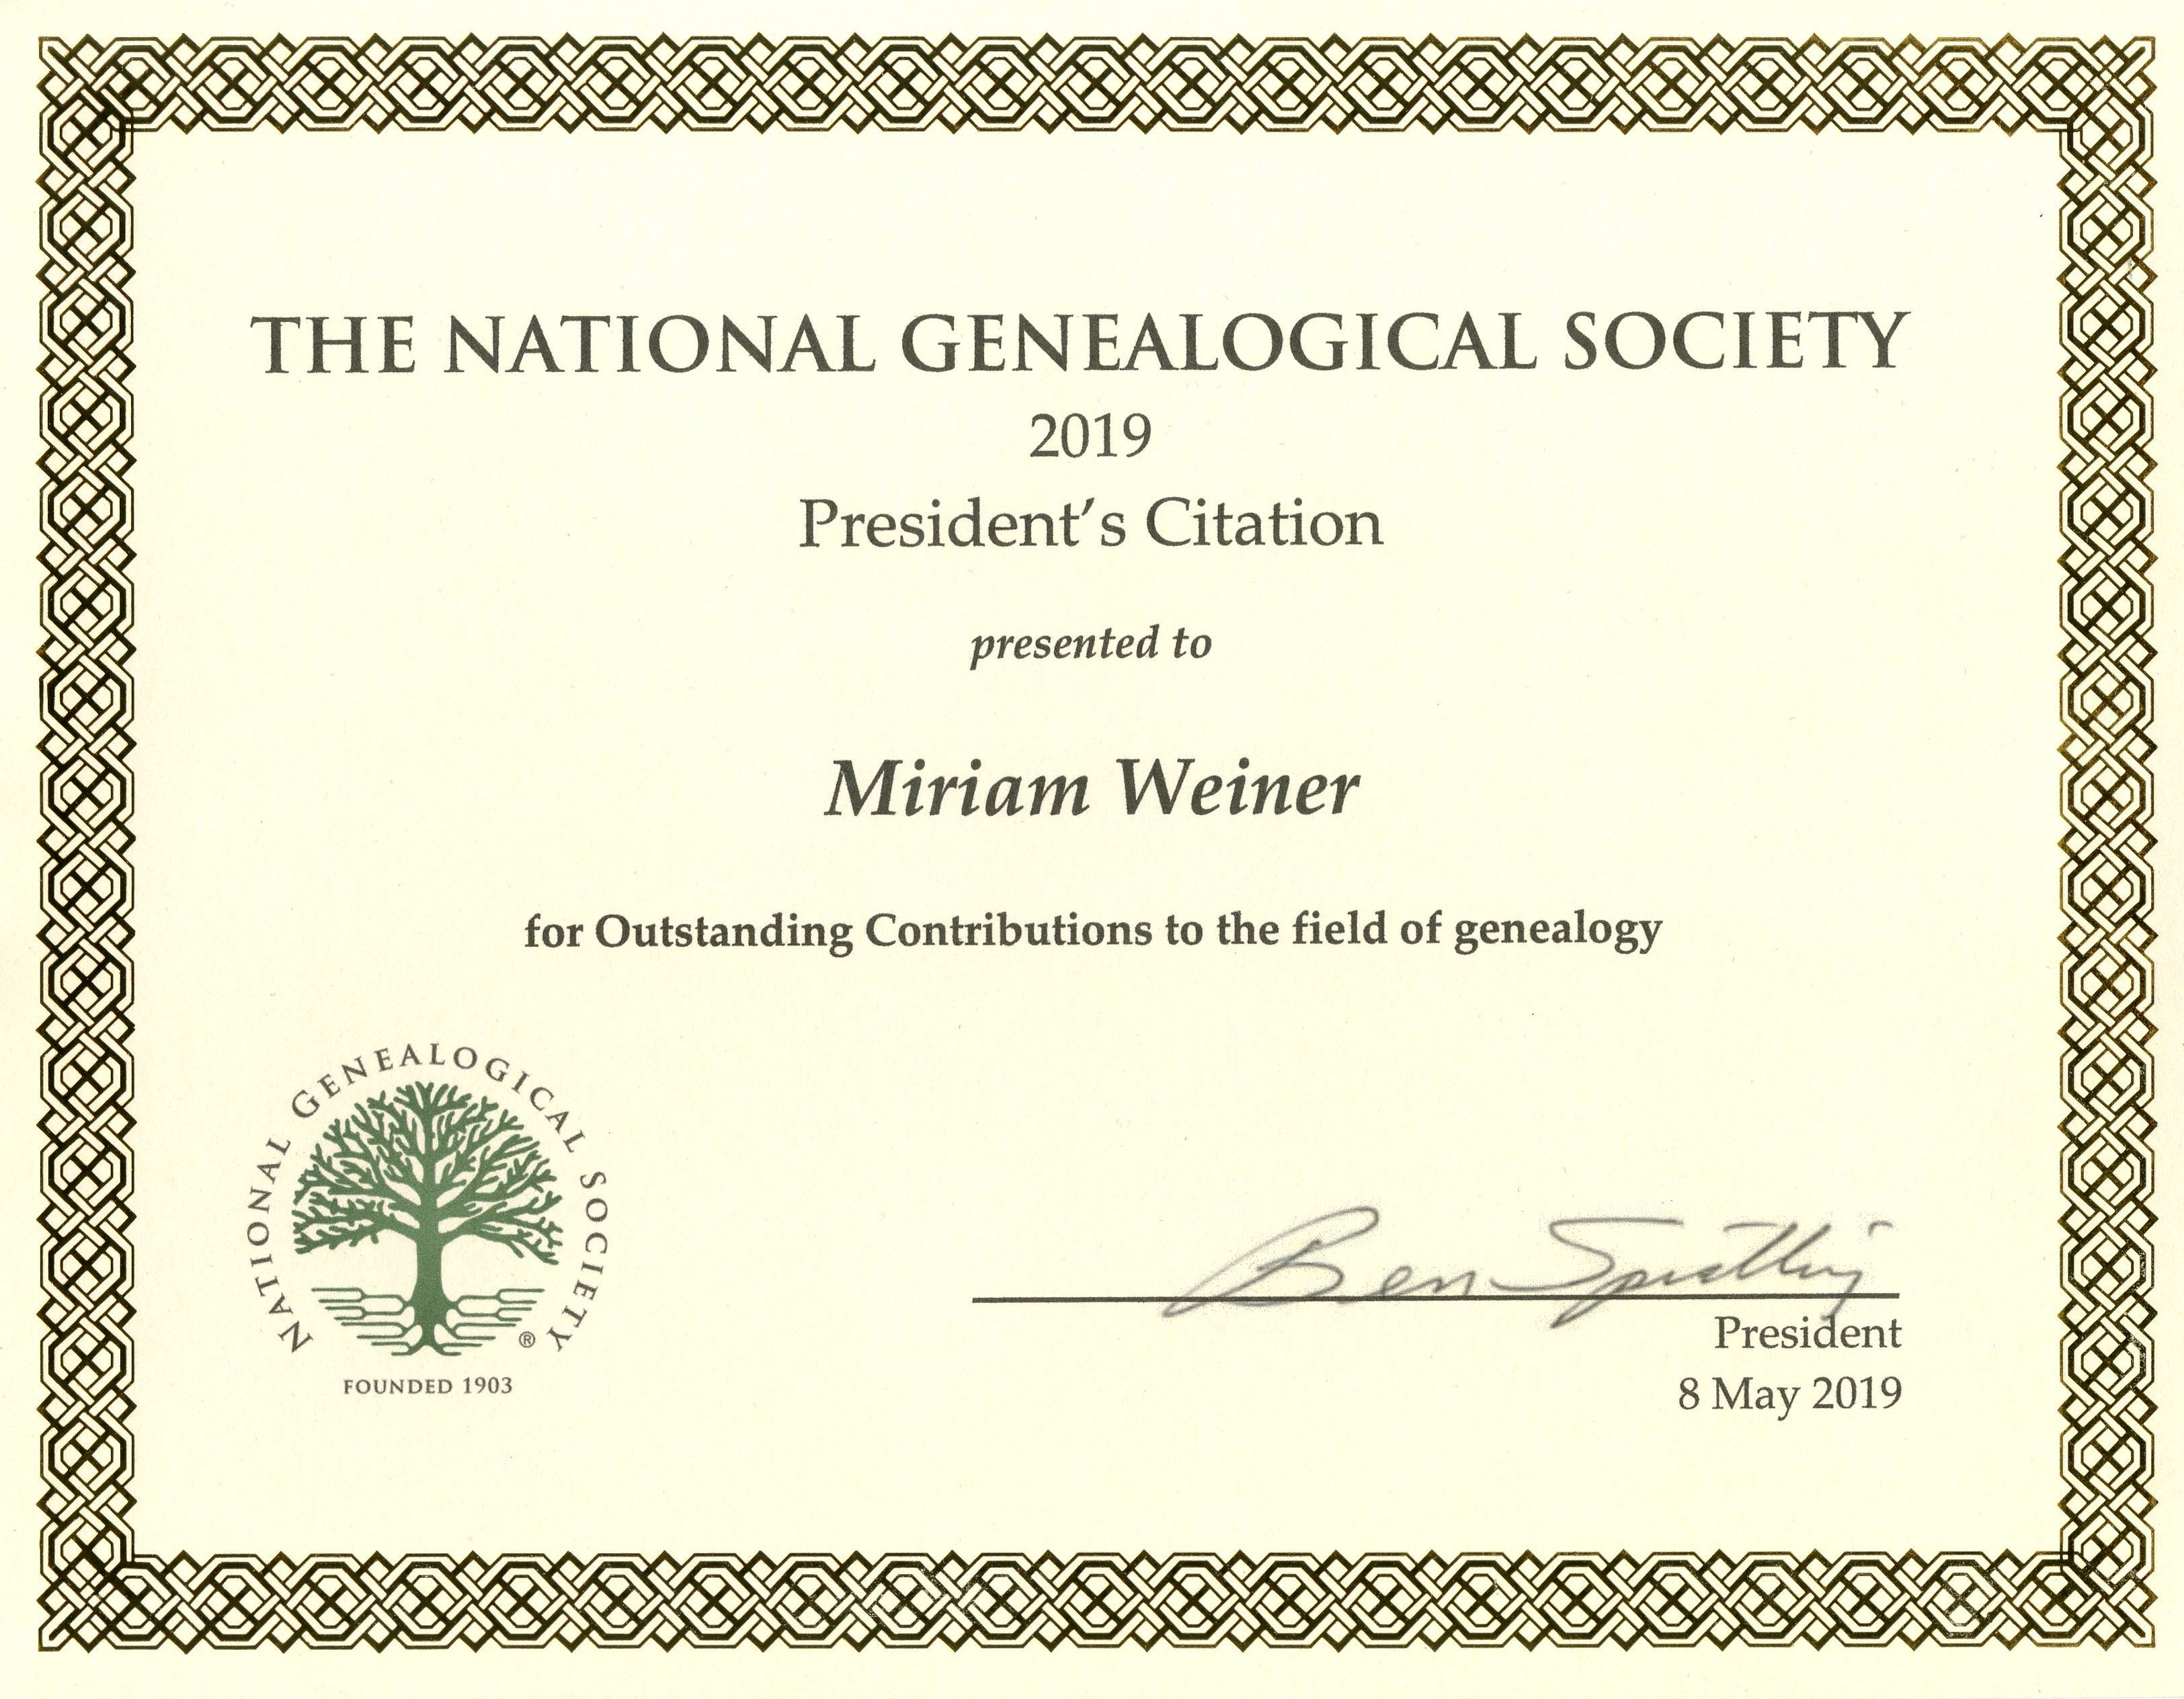 Federation of Genealogical Societies, 1991 (large)